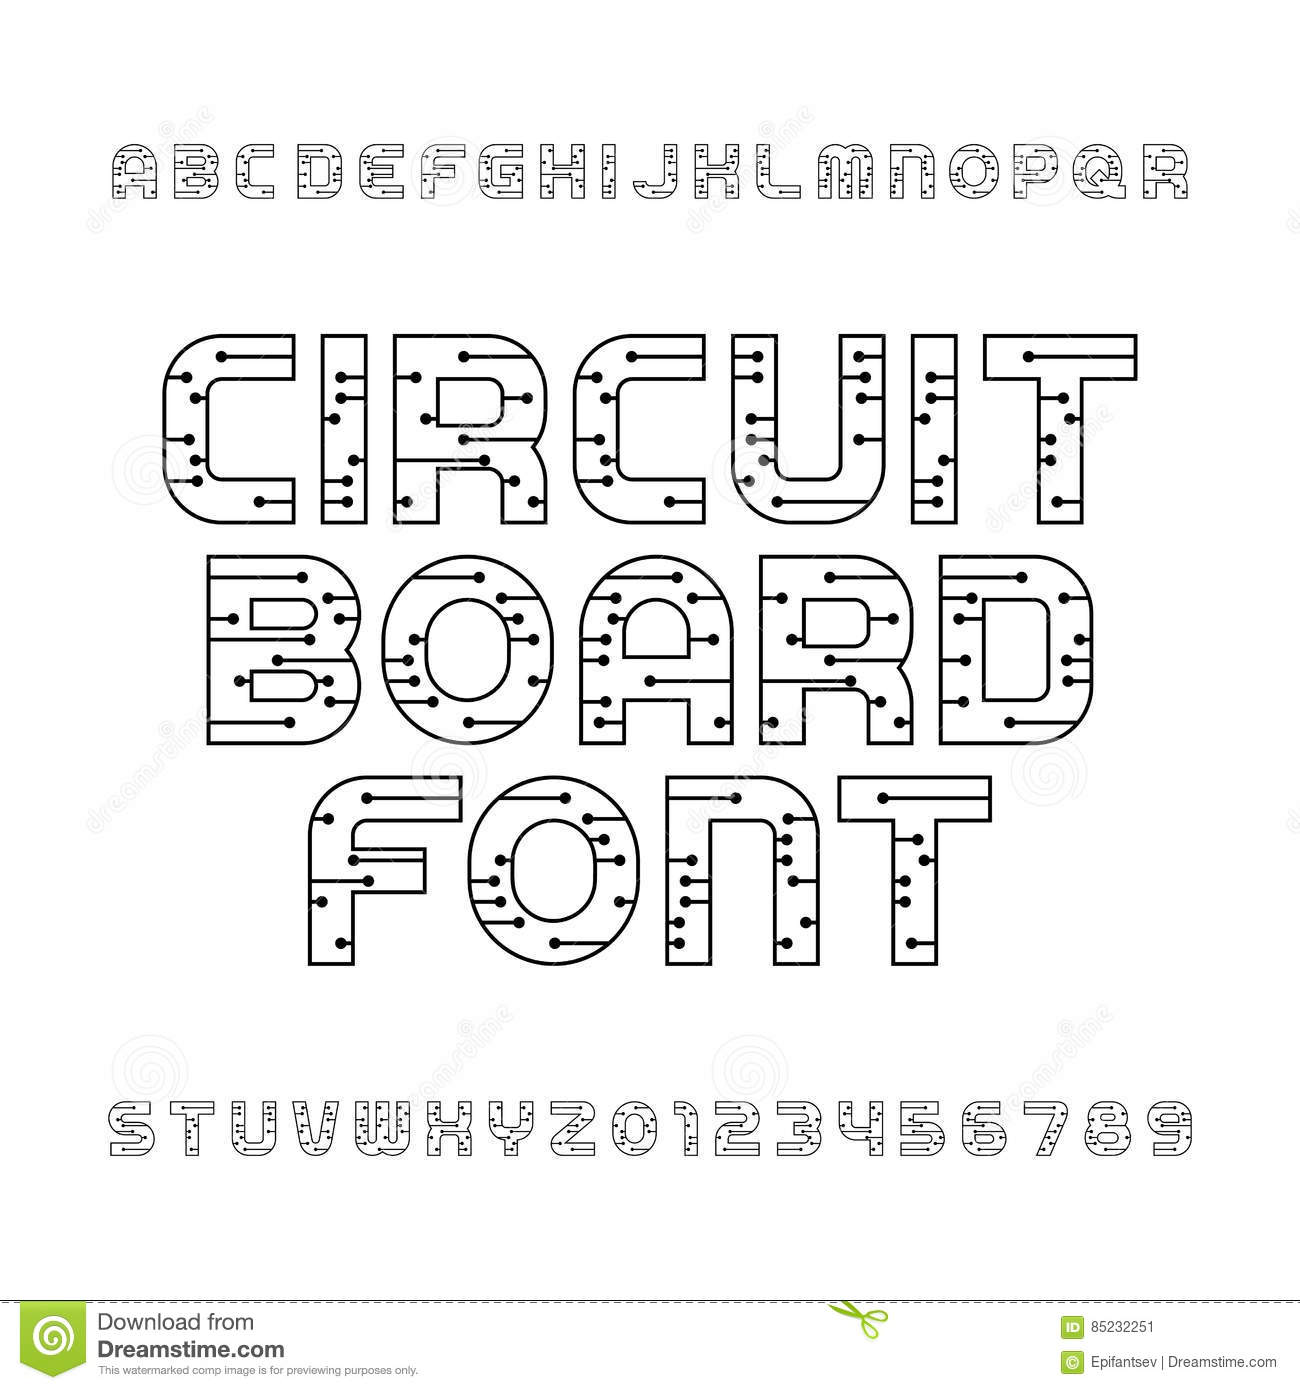 Old Fashioned Circuit Type Font Image Collection - Electrical ...